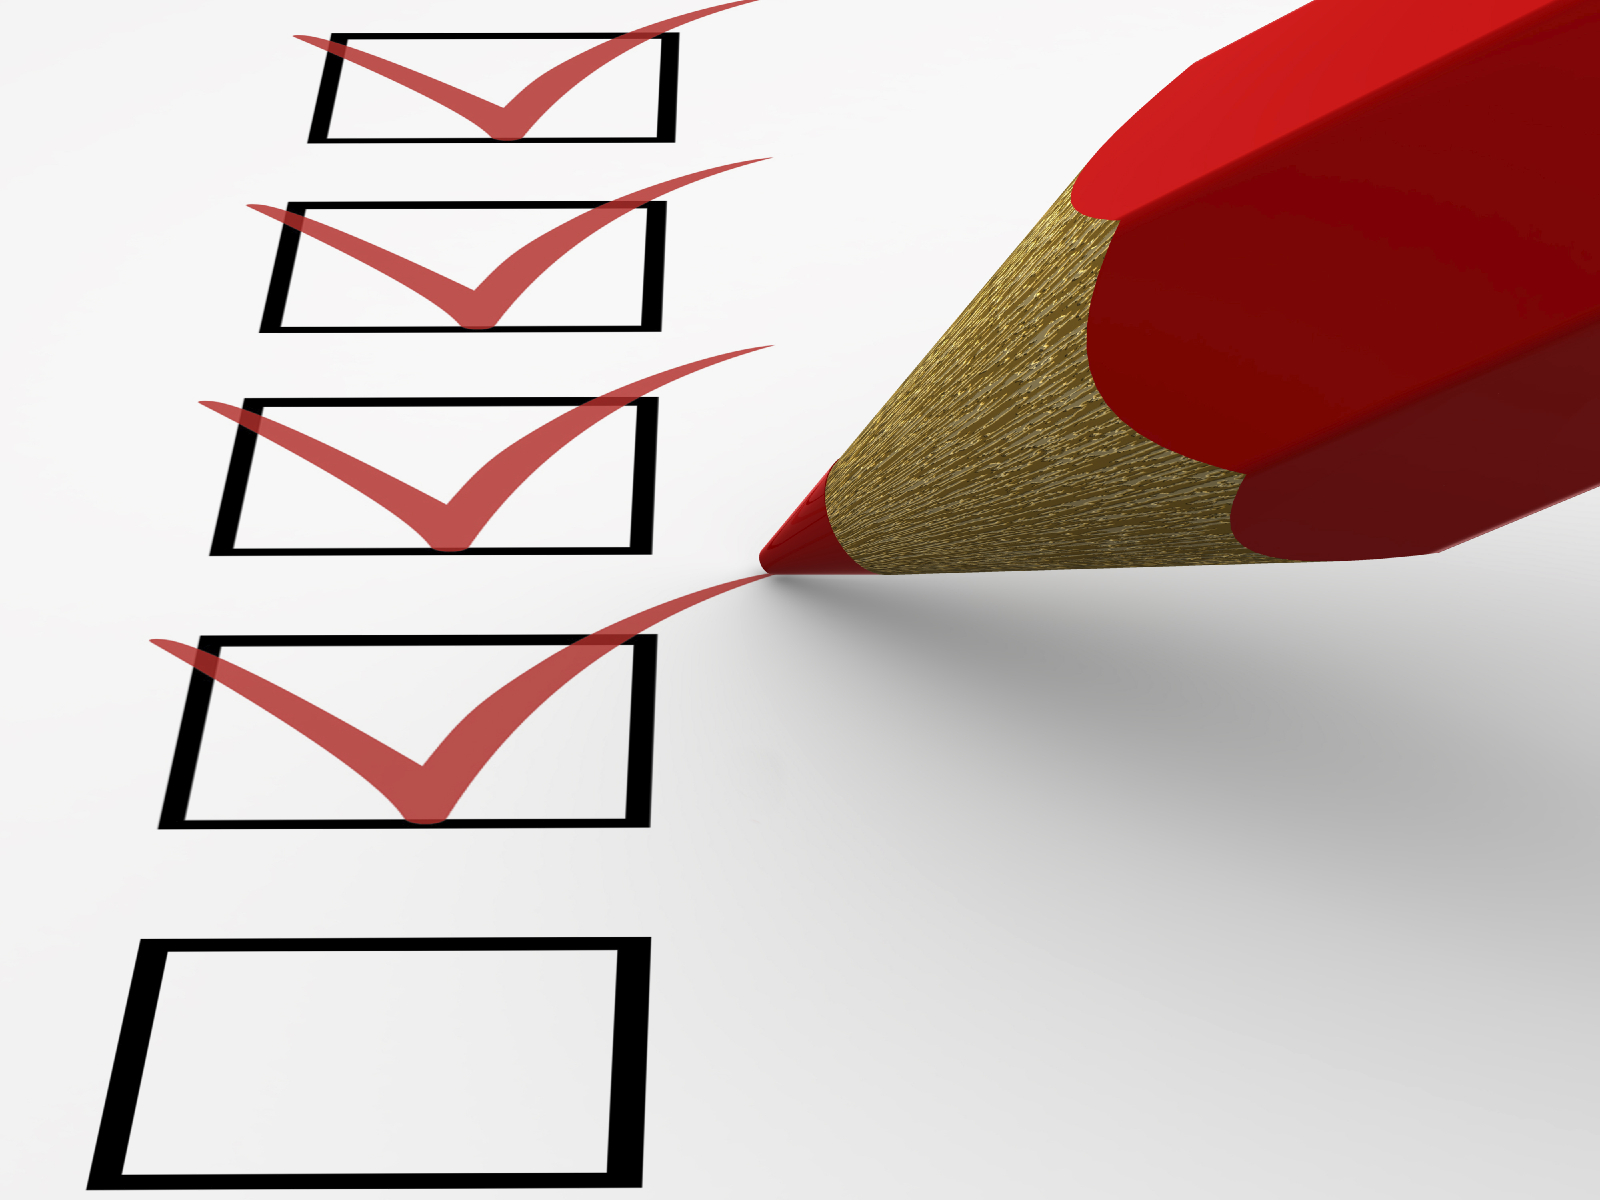 leadership styles to avoid the micr ager revival fire for kids the questionnaire